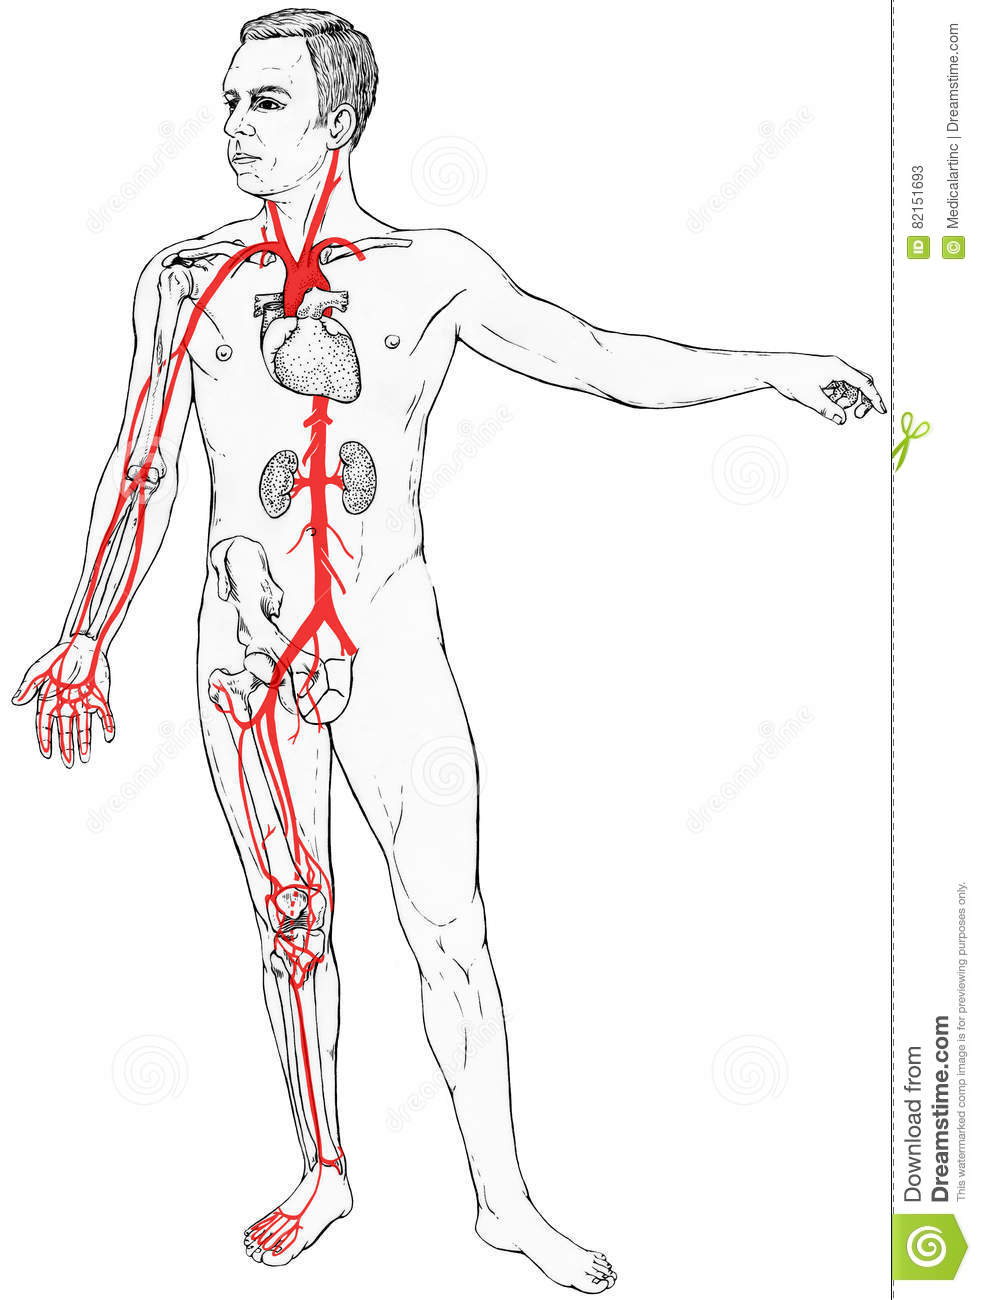 Male Figure With Select Internal Anatomy And Blood Vessels Stock ...